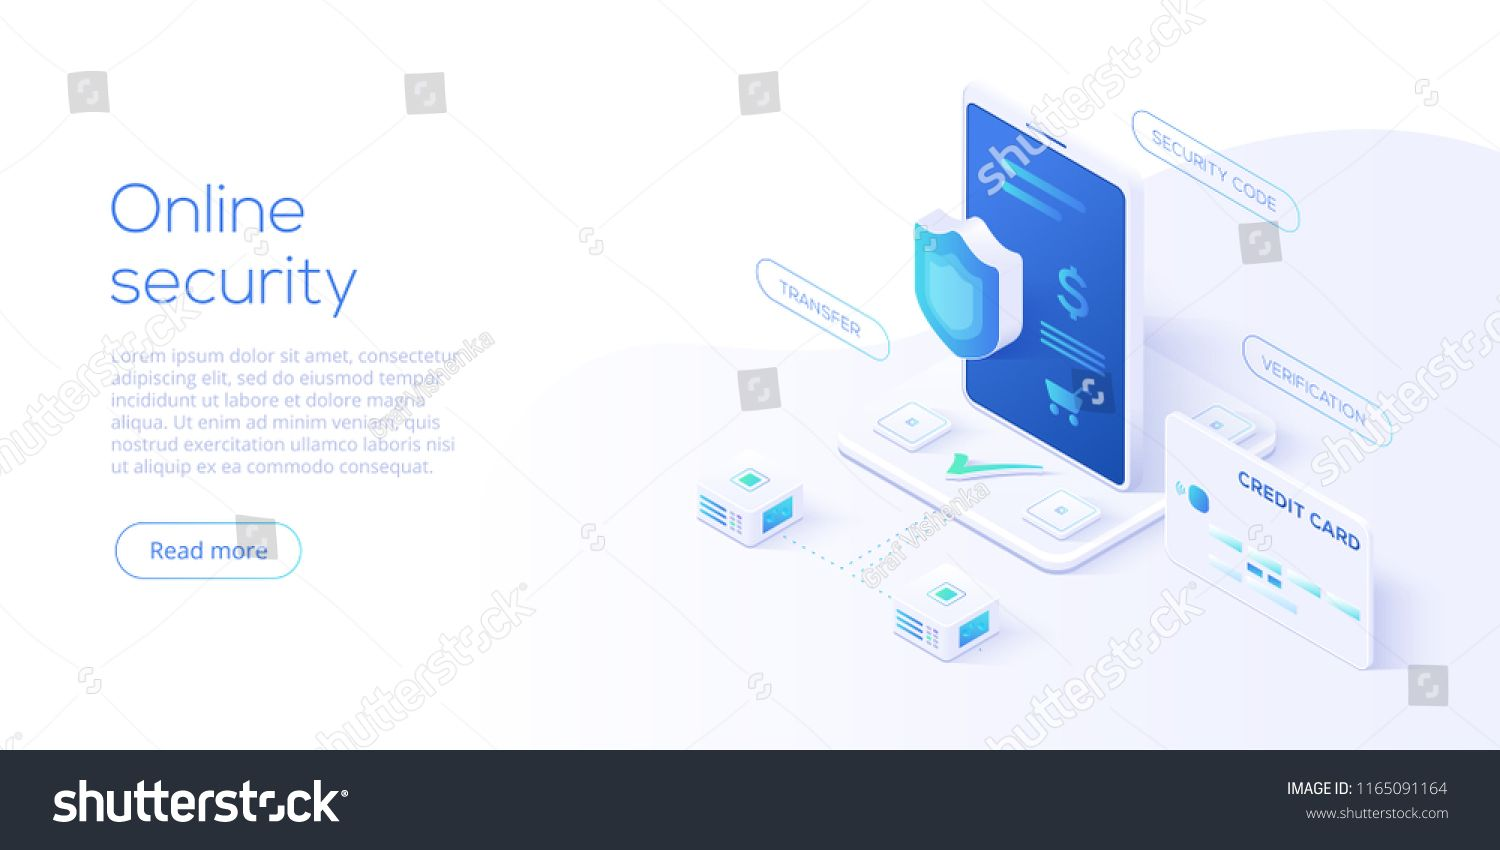 Mobile Data Security Isometric Vector Illustration Online Payment